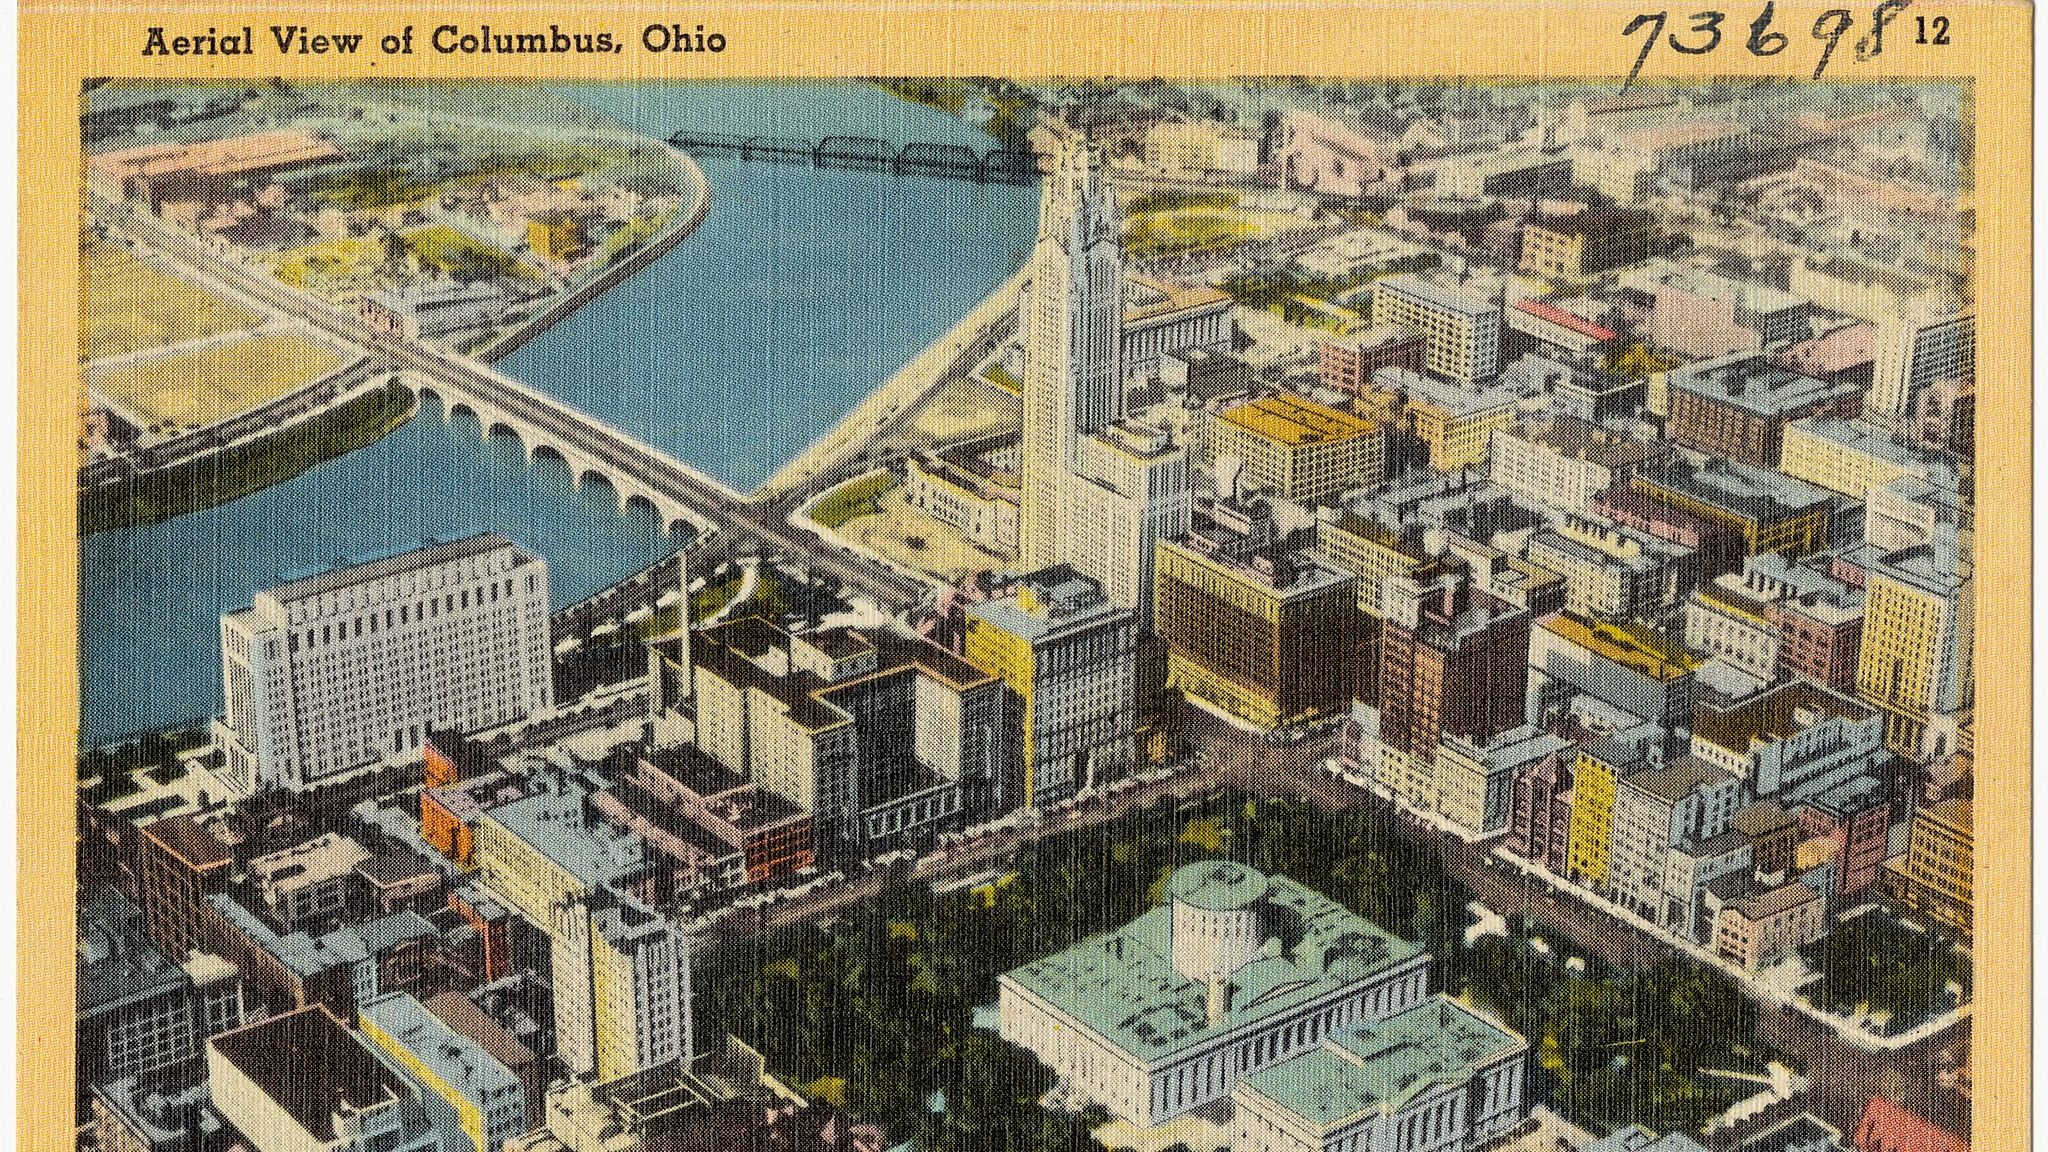 An illustration of an aerial view of Columbus, Ohio.